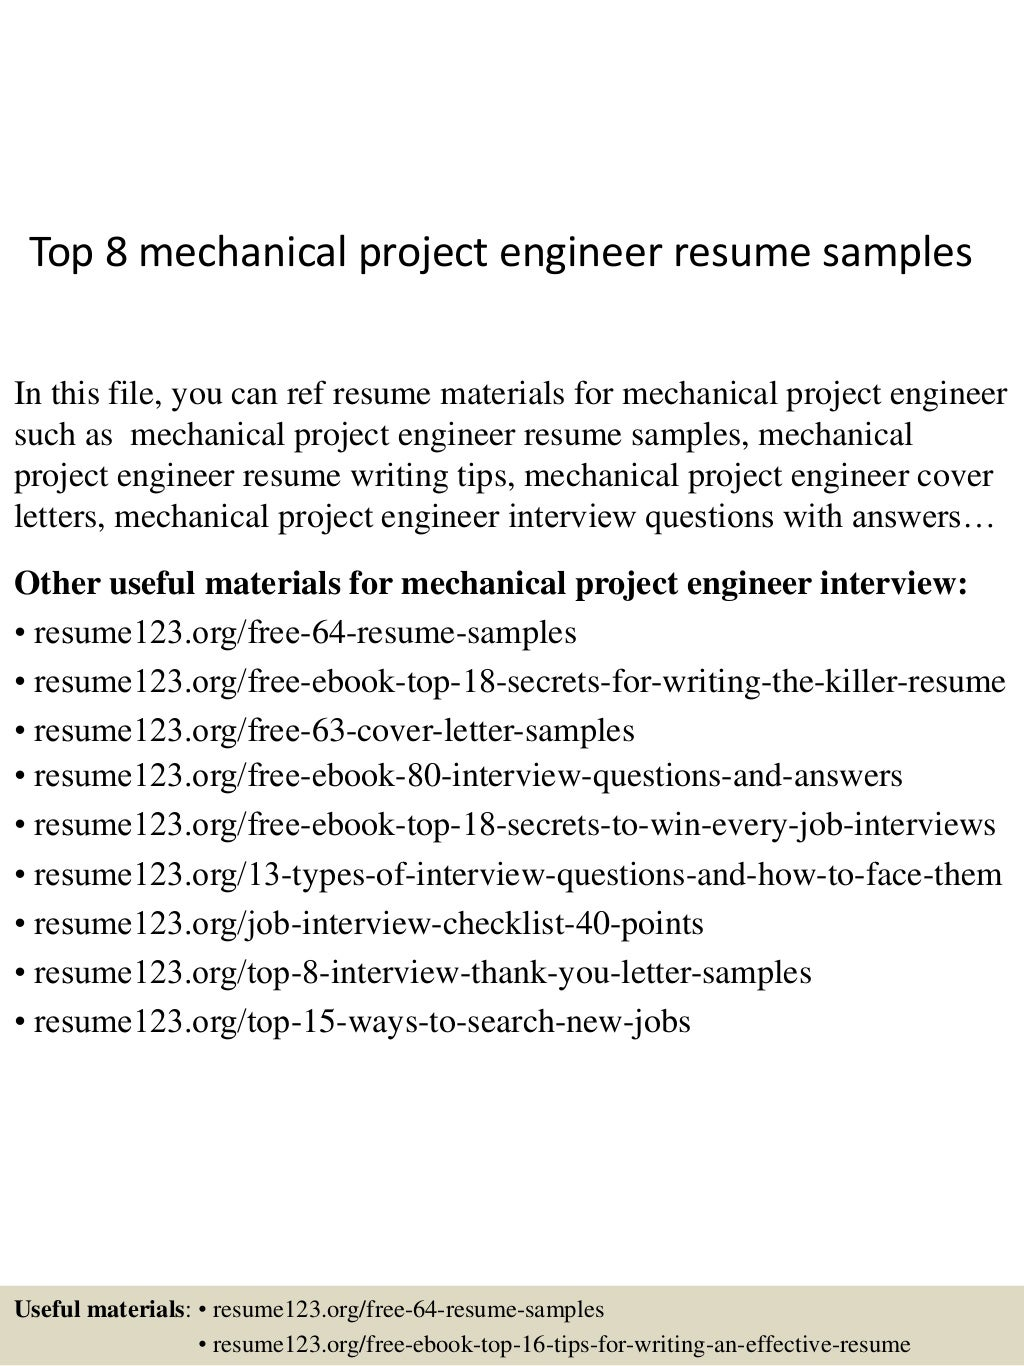 top 8 mechanical project engineer resume samples